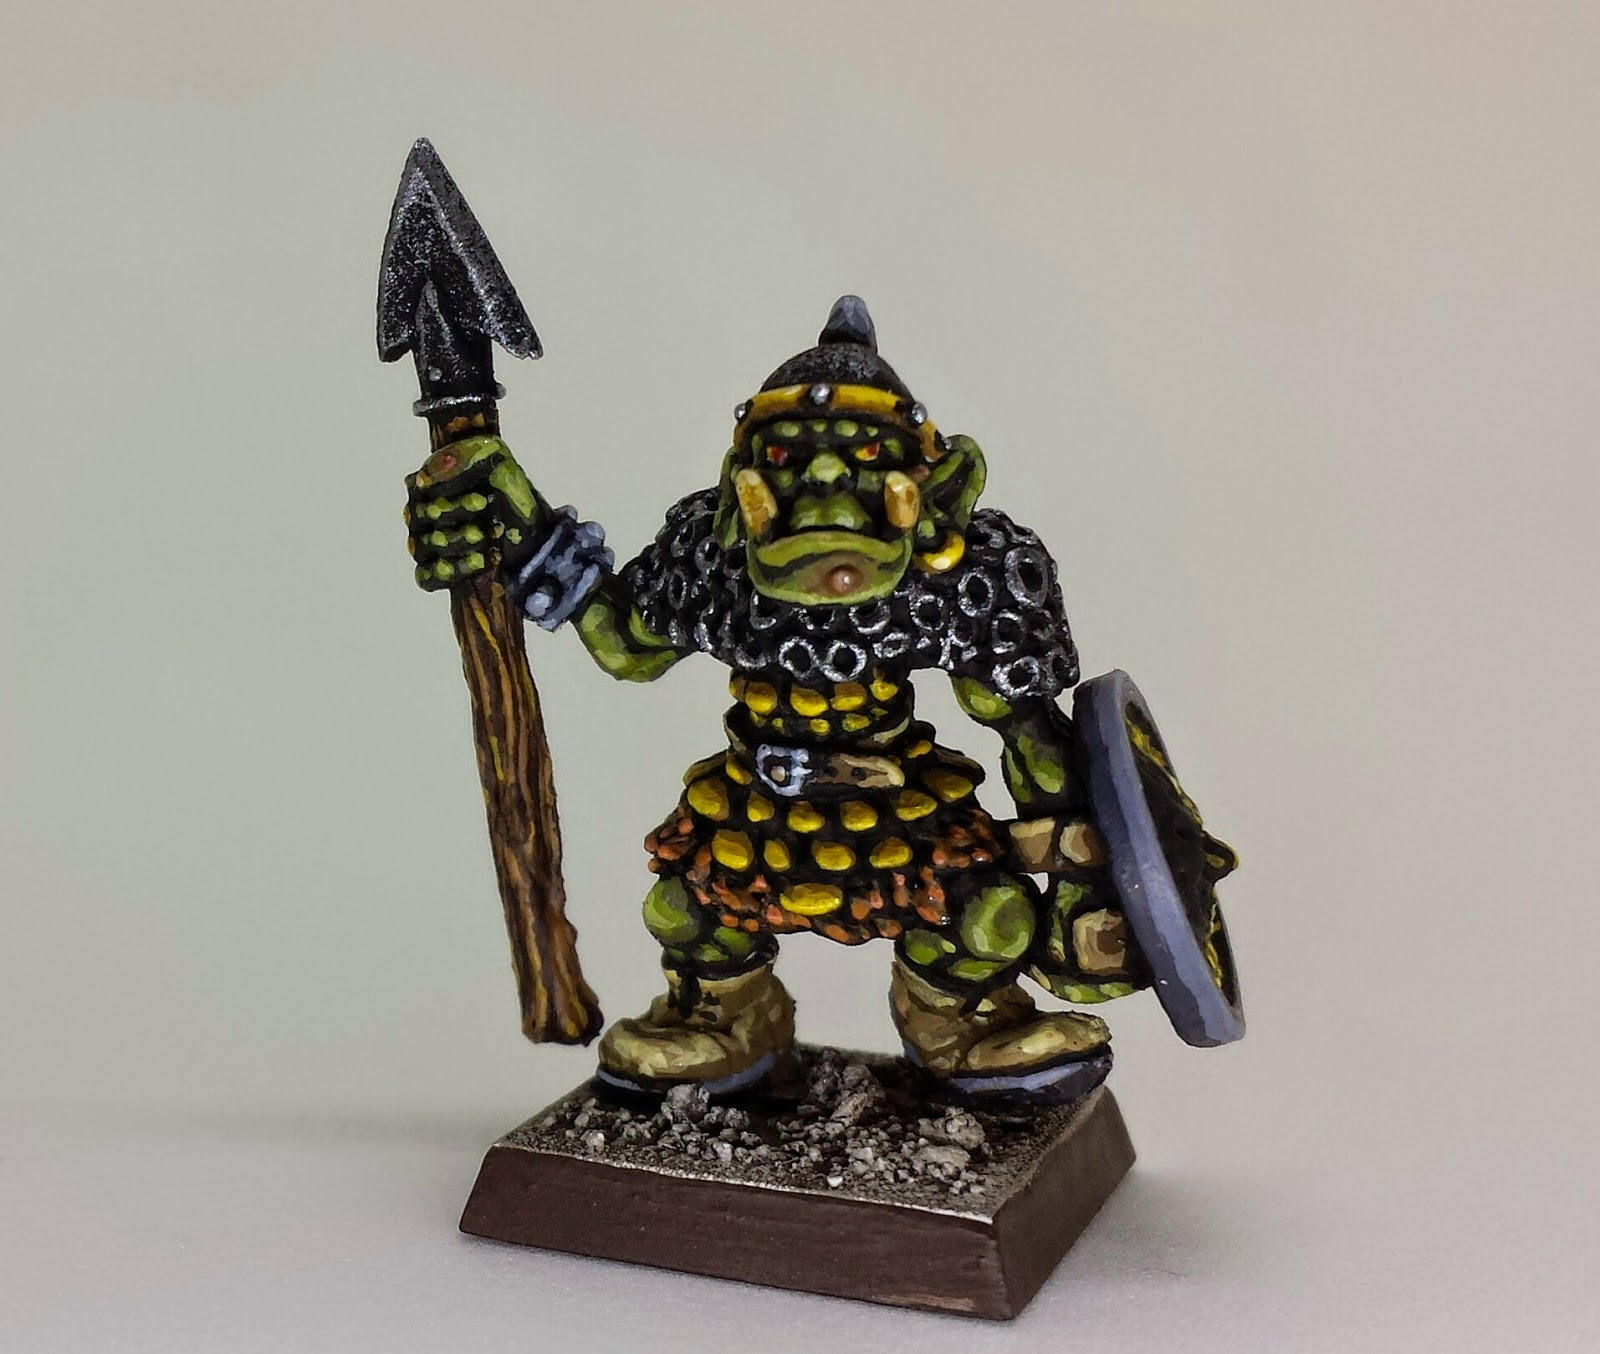 Now That's an Orc!